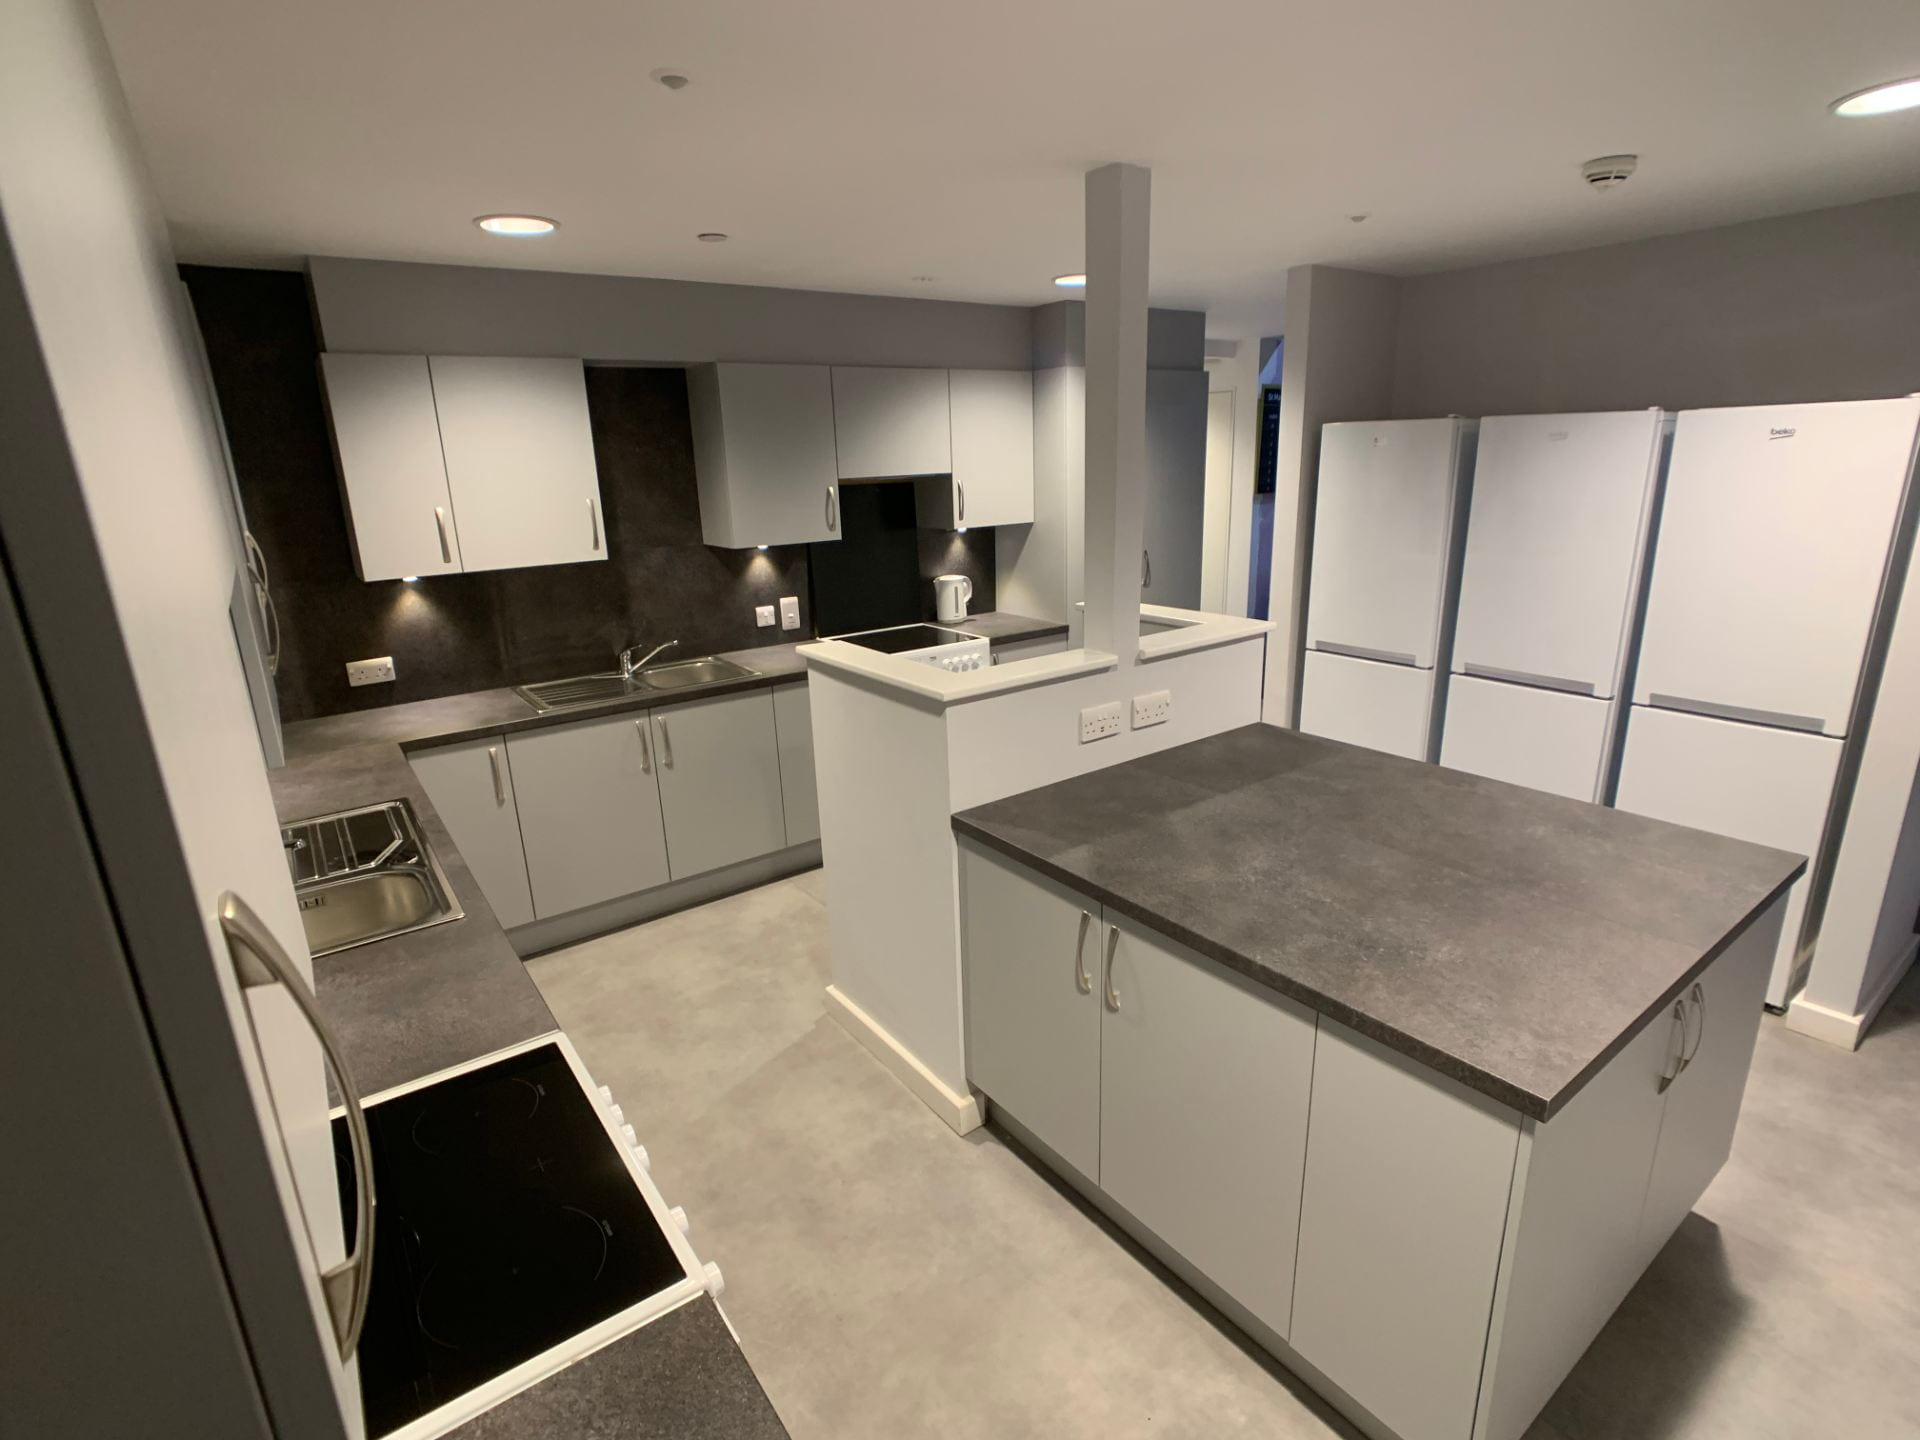 St. Marks Student Village example kitchen - including units, fridge freezer and cooker.